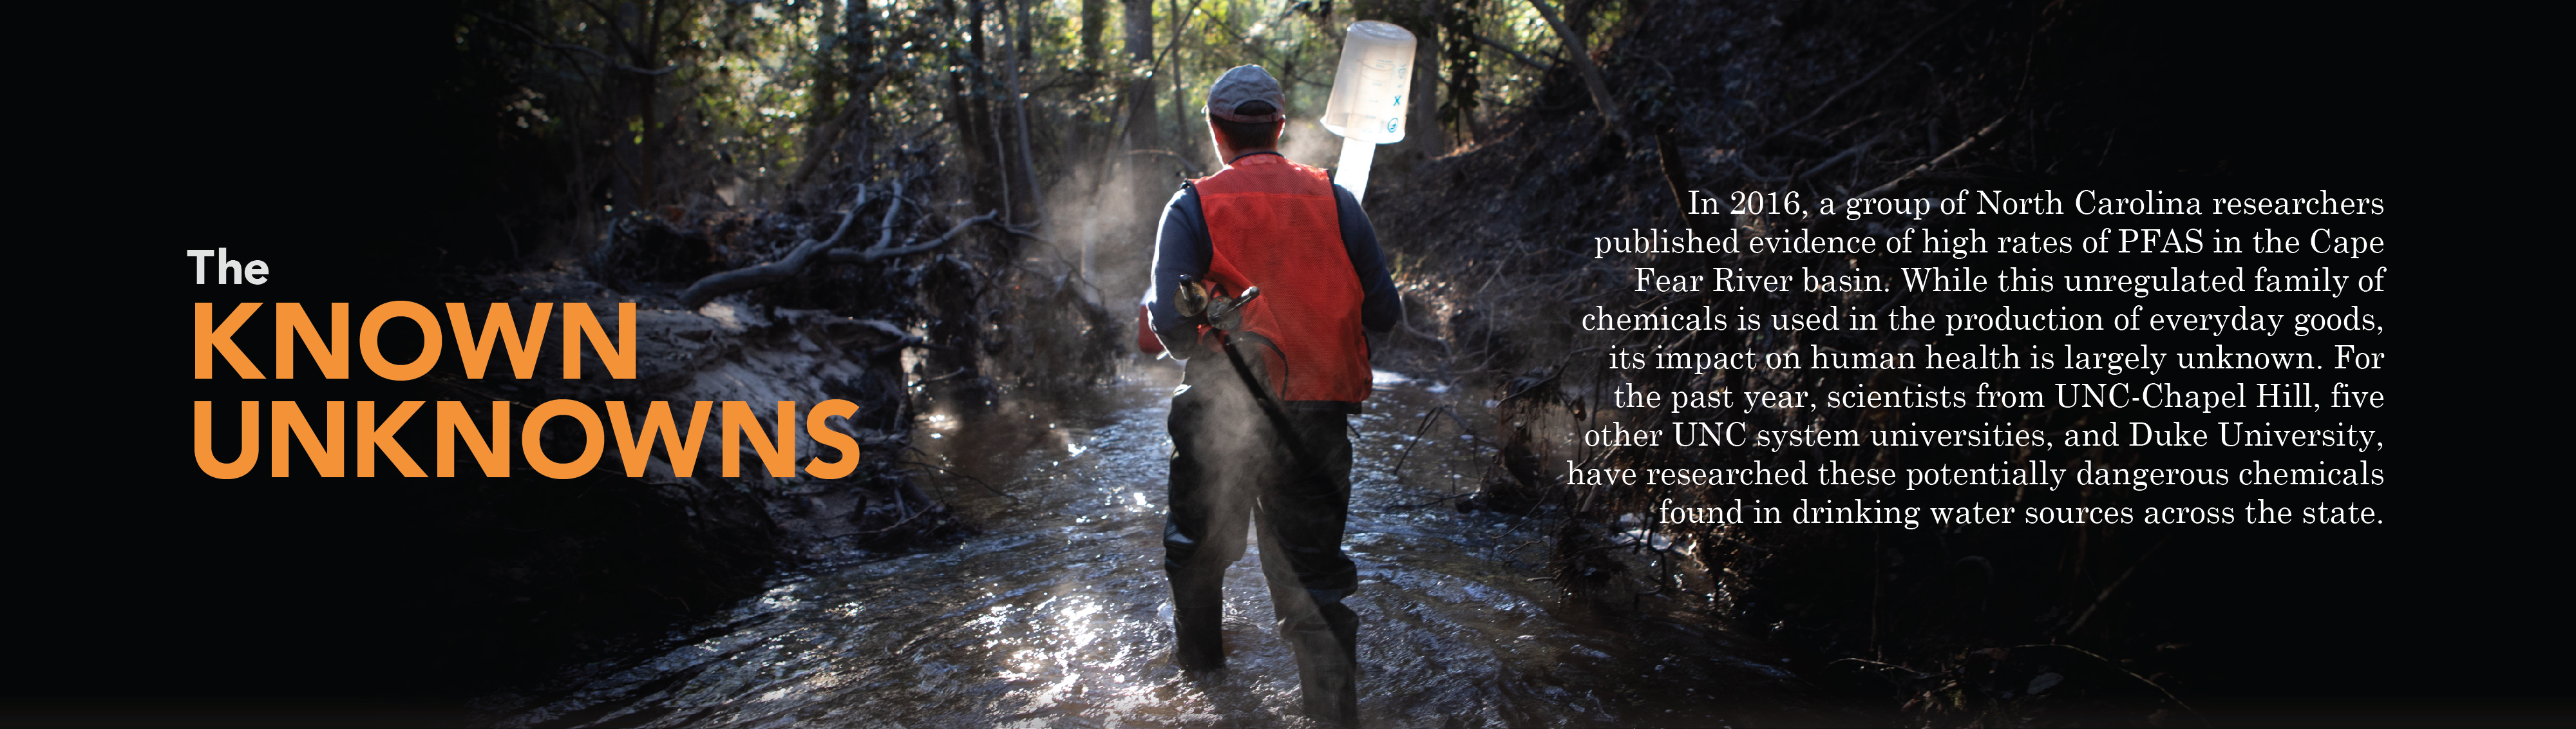 "Feature banner for: The Known Unknowns. ""In 2016, a group of North Carolina researcherspublished evidence of high rates of PFAS in the Cape Fear River basin. While this unregulated family of chemicals is used in the production of everyday goods, its impact on human health is largely unknown. For the past year, scientists from UNC-Chapel Hill, five other UNC system universities, and Duke University, have researched these potentially dangerous chemicals found in drinking water sources across the state."" Click to read more."